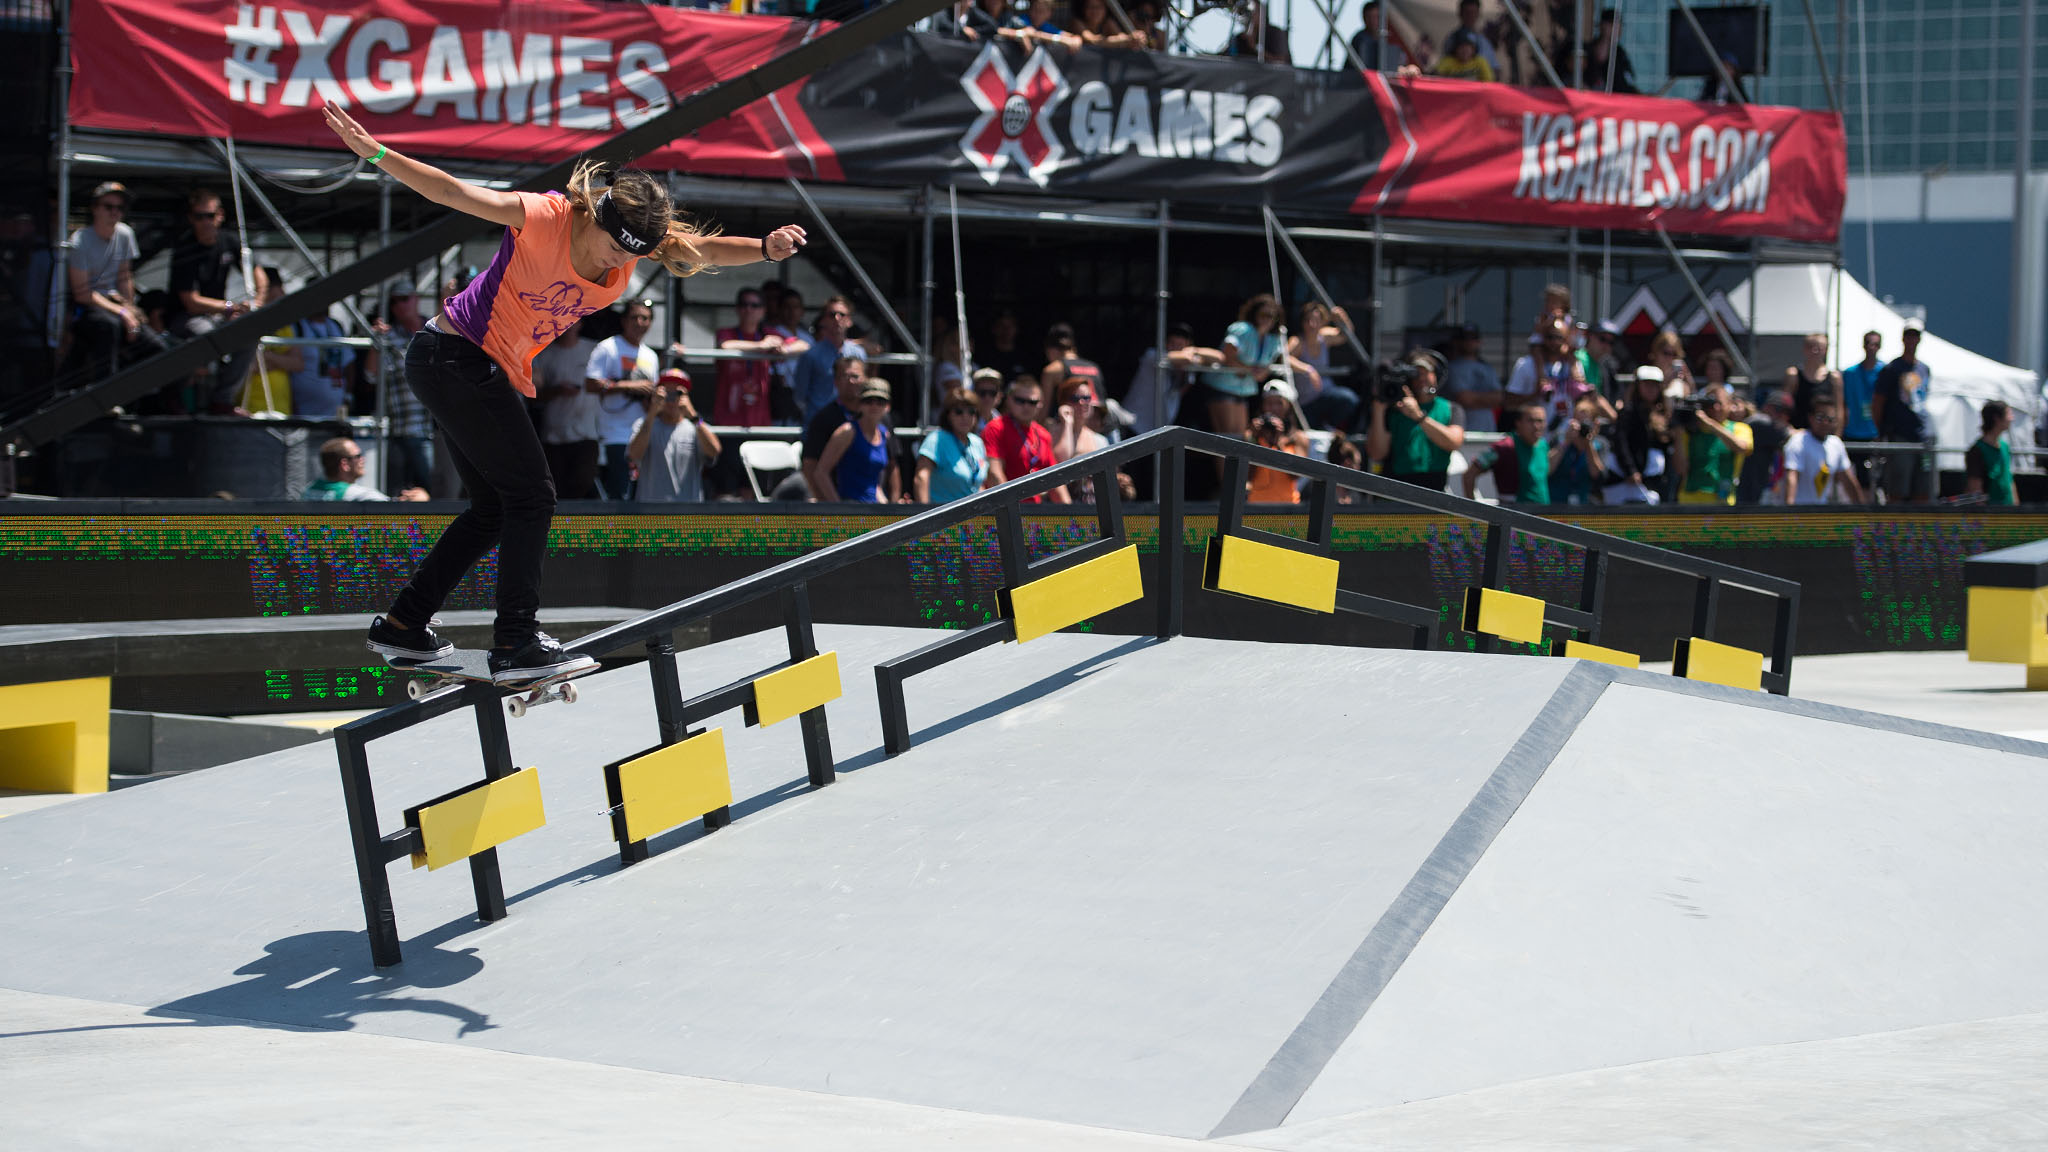 pLeticia Bufoni claimed her sixth X Games medal and her third gold in 2013 with a win in Women's Skateboard Street on Thursday, following her Street win in Foz do Iguaçu and her Real Women video contest win in Barcelona./p